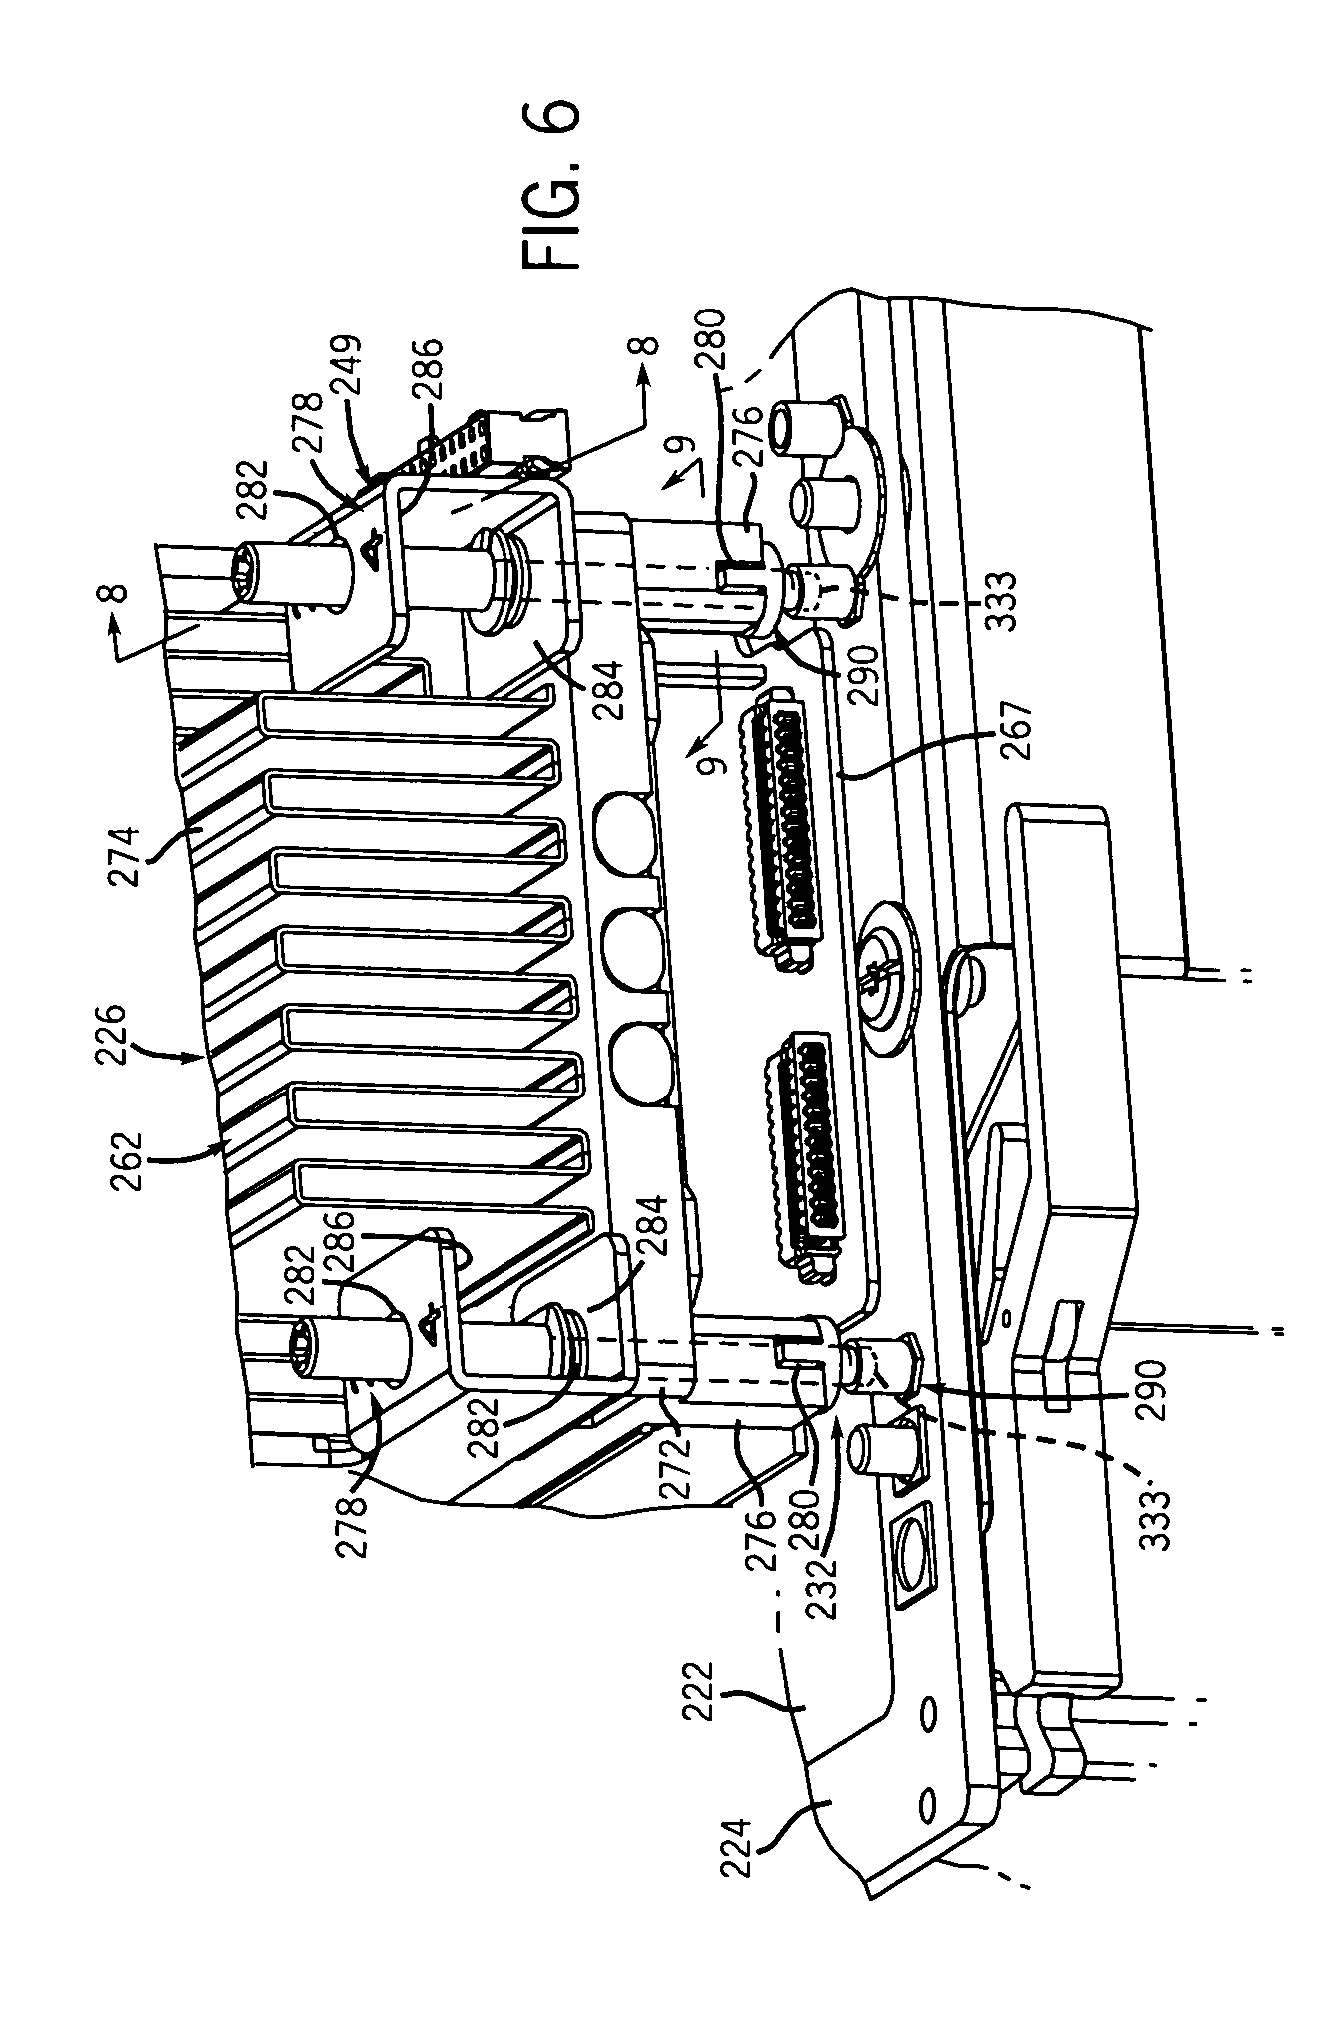 patent us7061126 - circuit board assembly